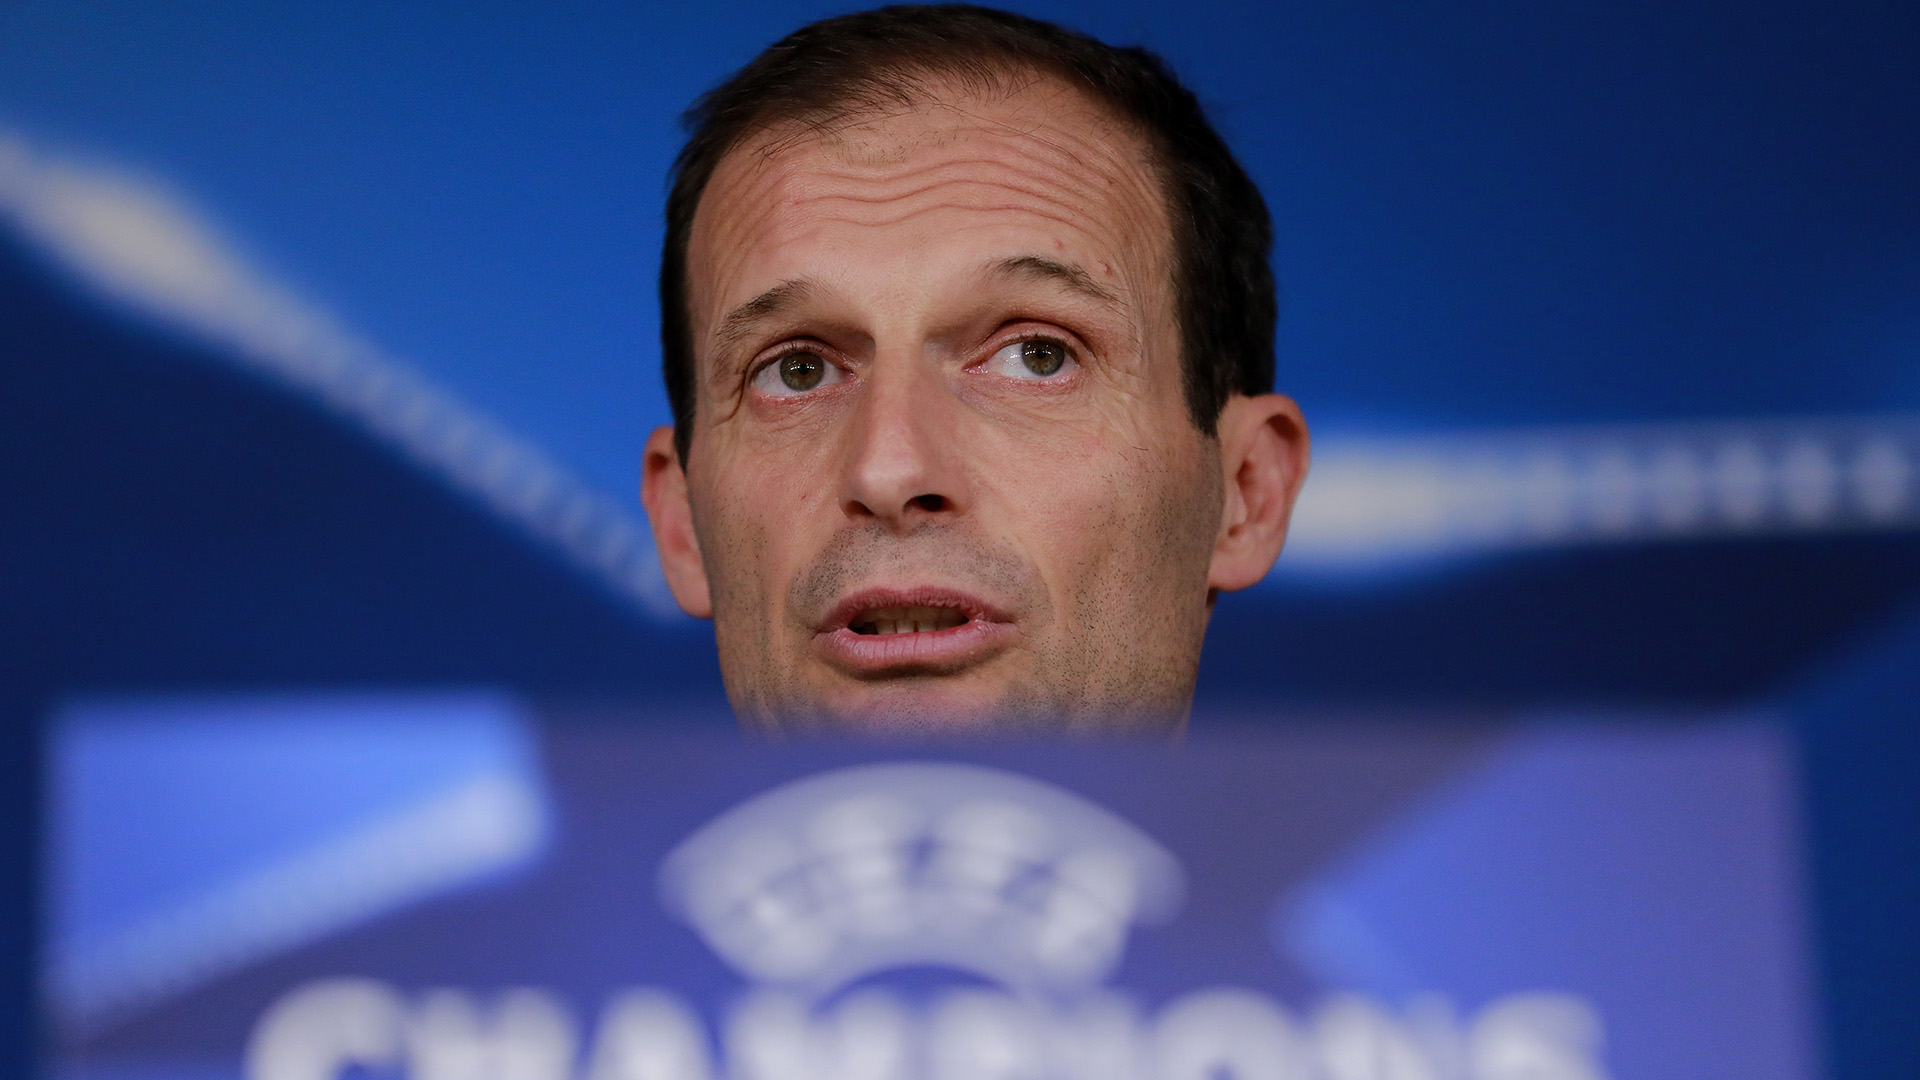 Verso Real Madrid-Juventus, Allegri e Buffon: